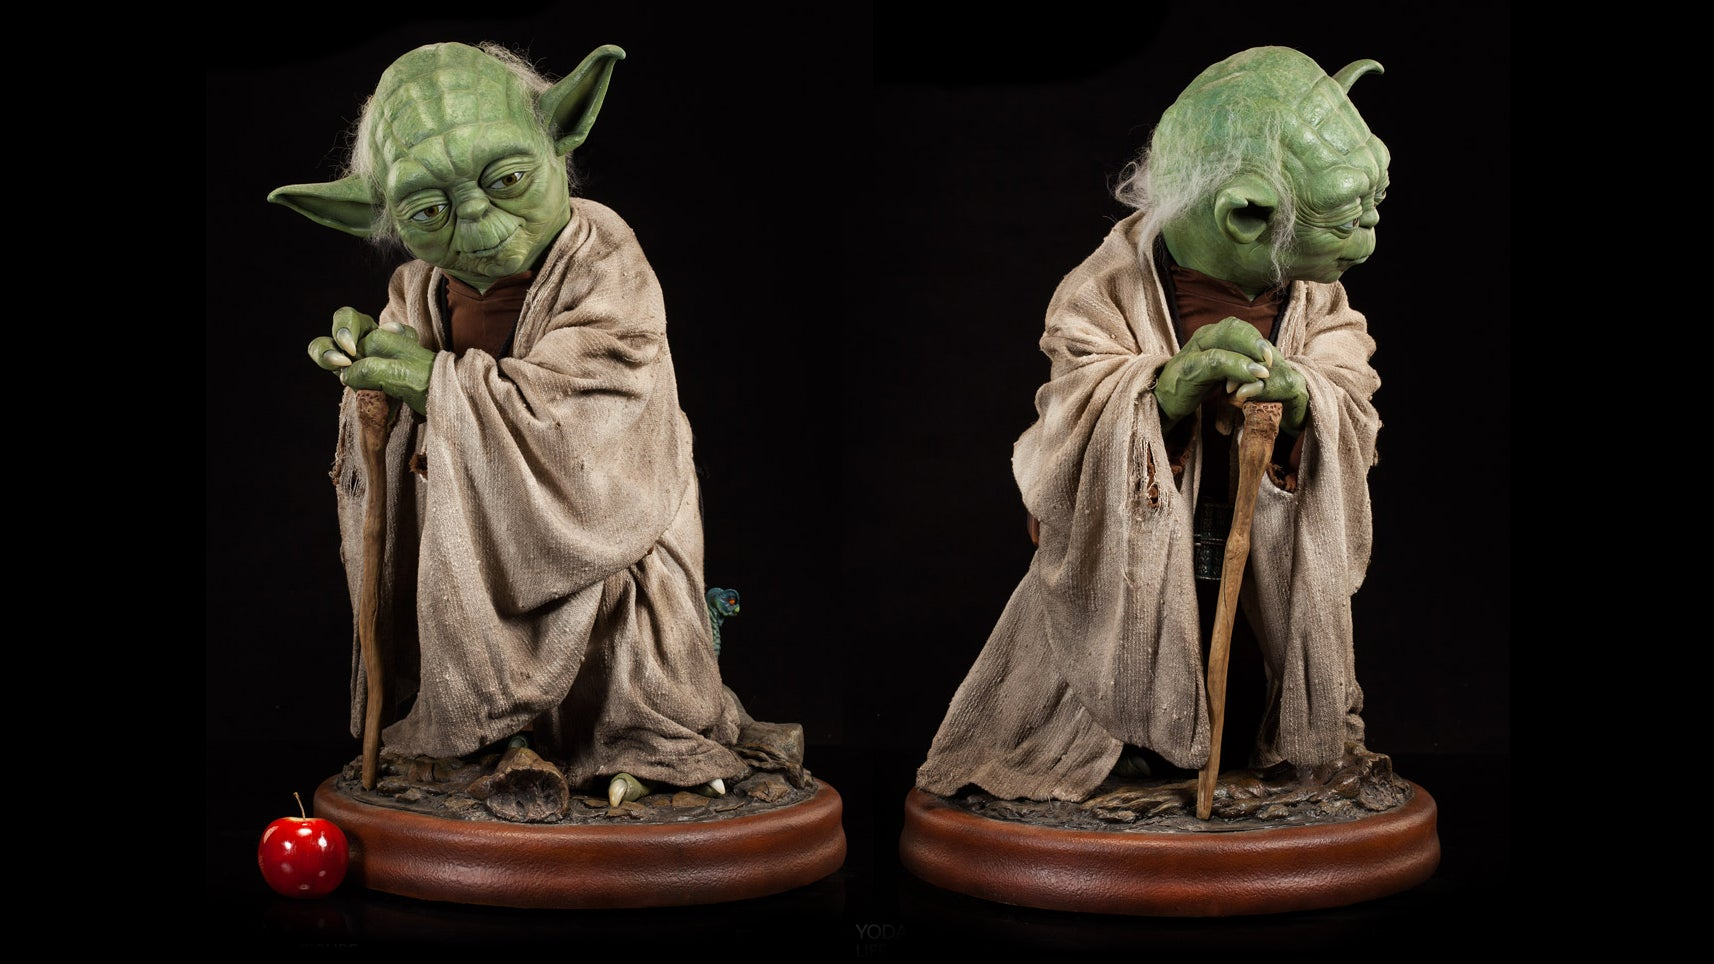 A Jedi Master Would Surely Approve Of Spending $3300 On This Life-Size Yoda